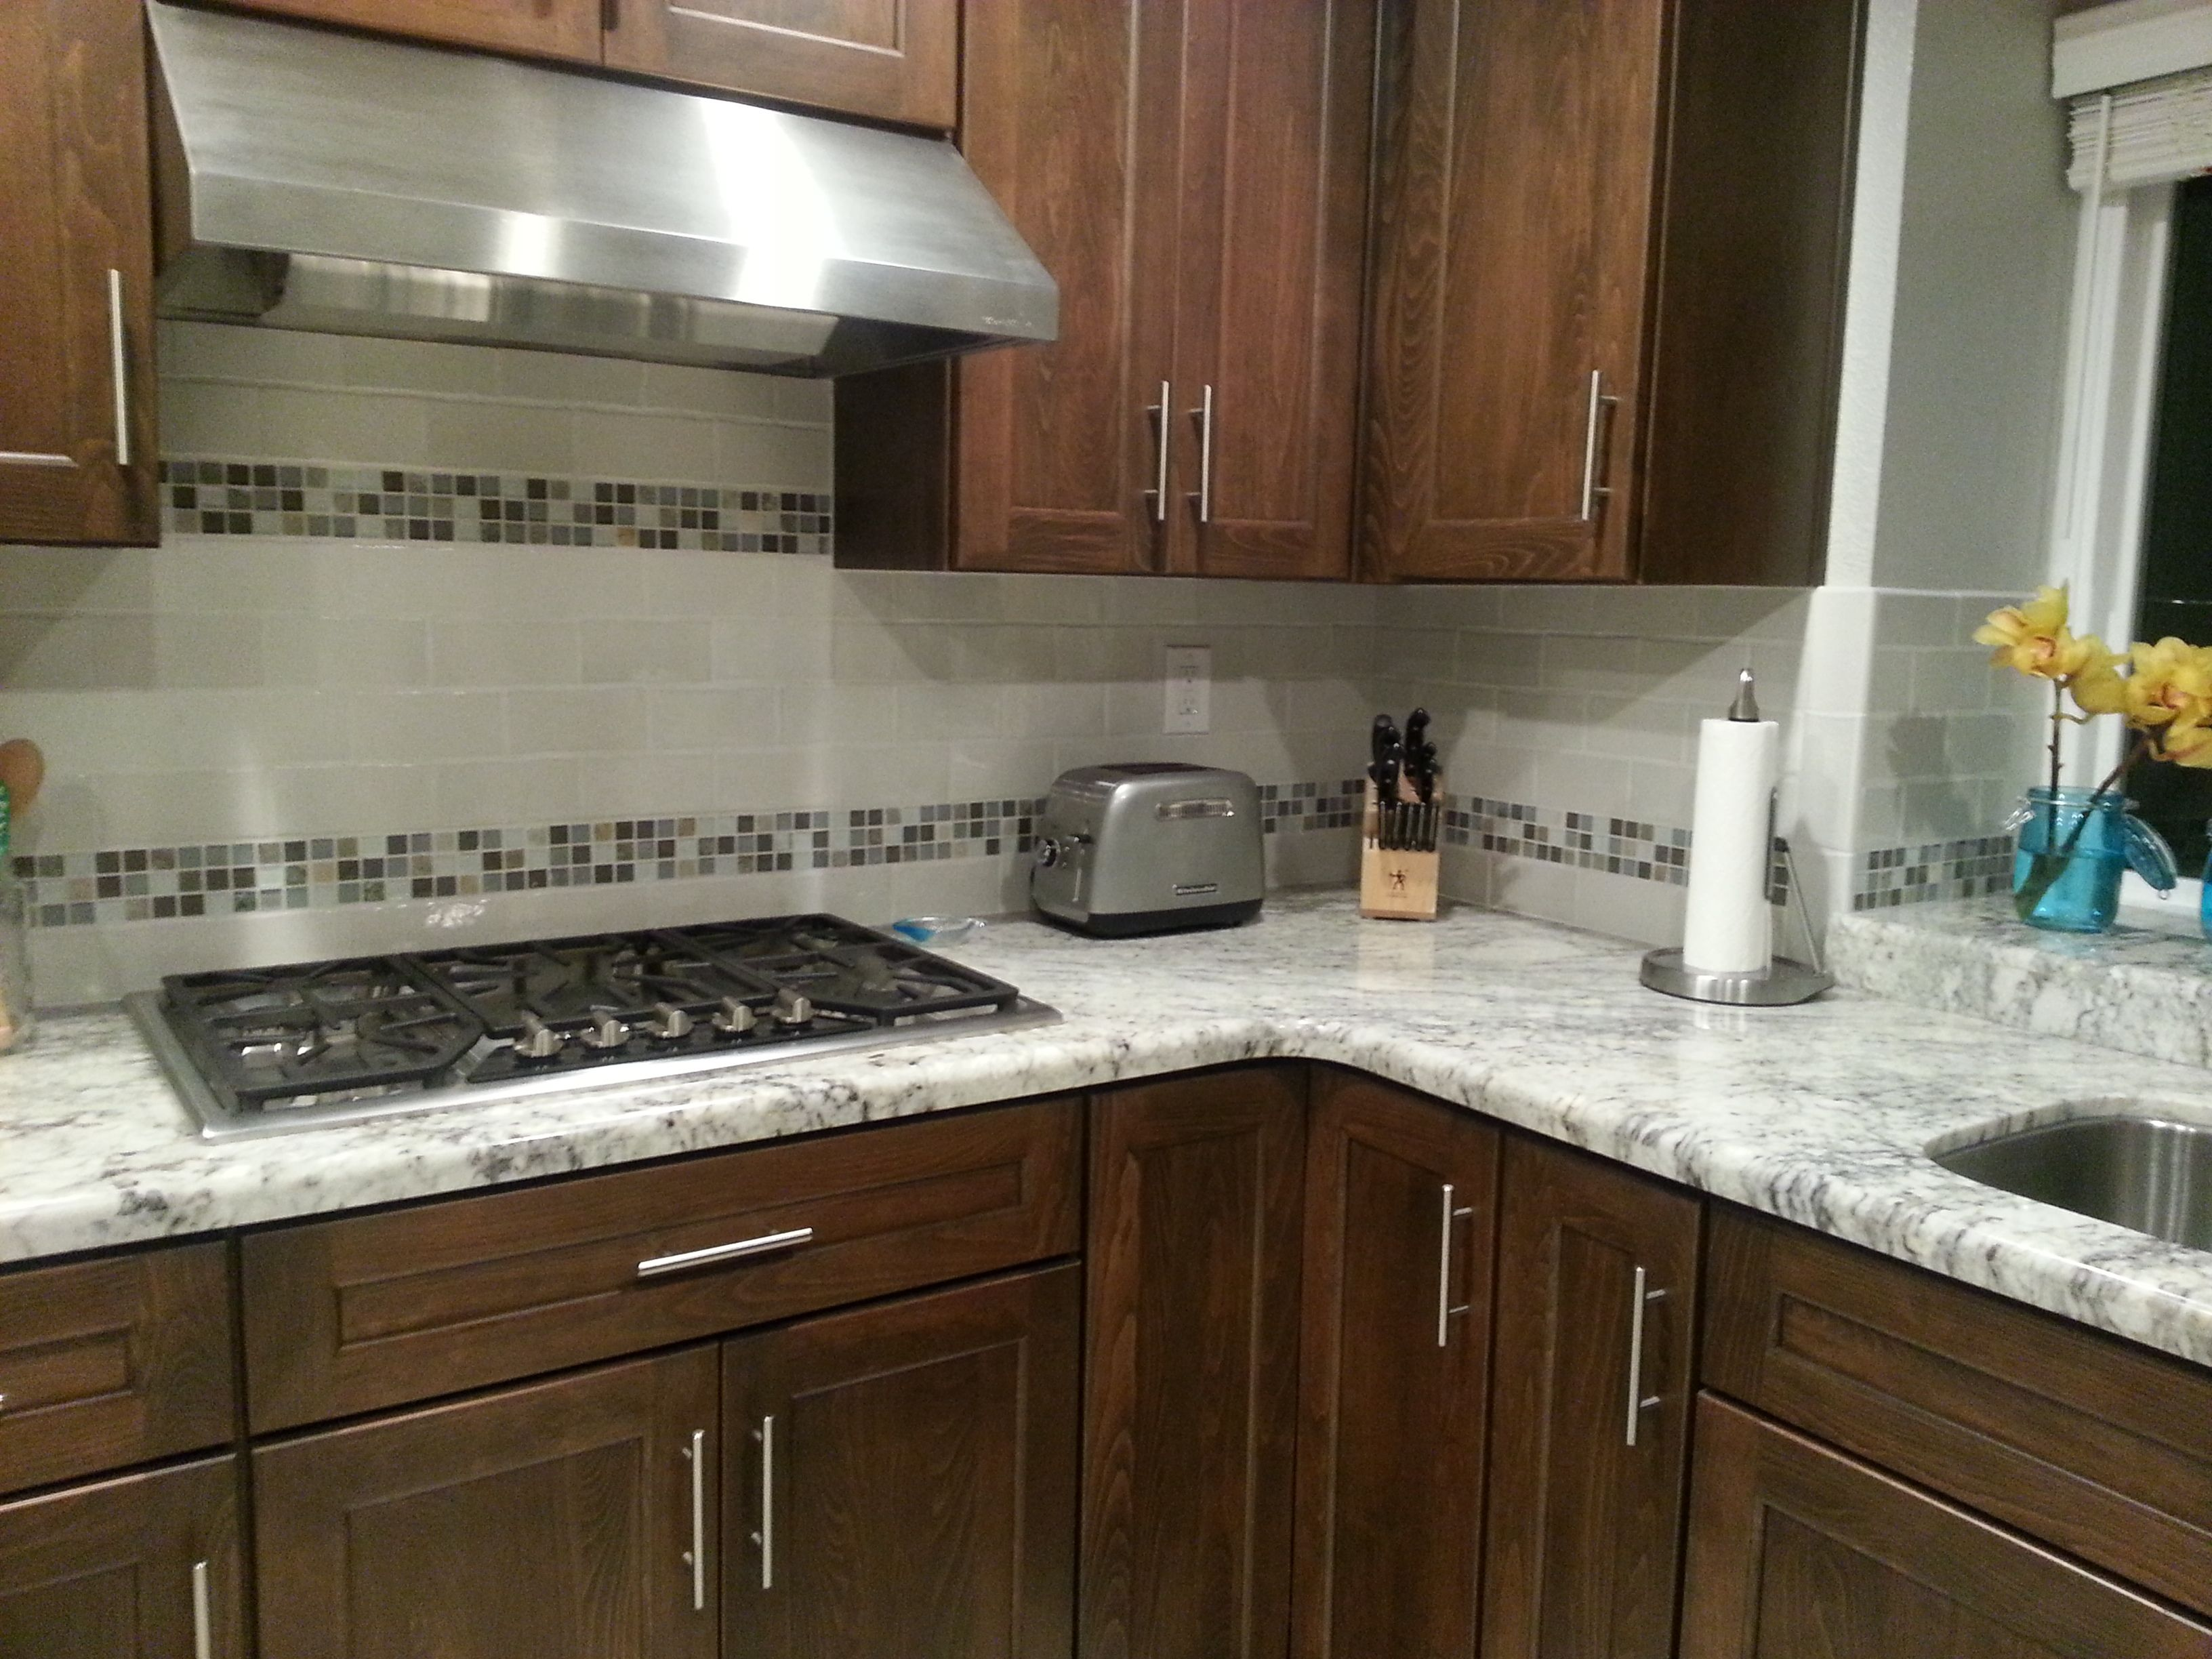 Countertops And Backsplash Combinations Gr770p African Rainbow Granite Kitchen With Ken Mason 3x6 Subway